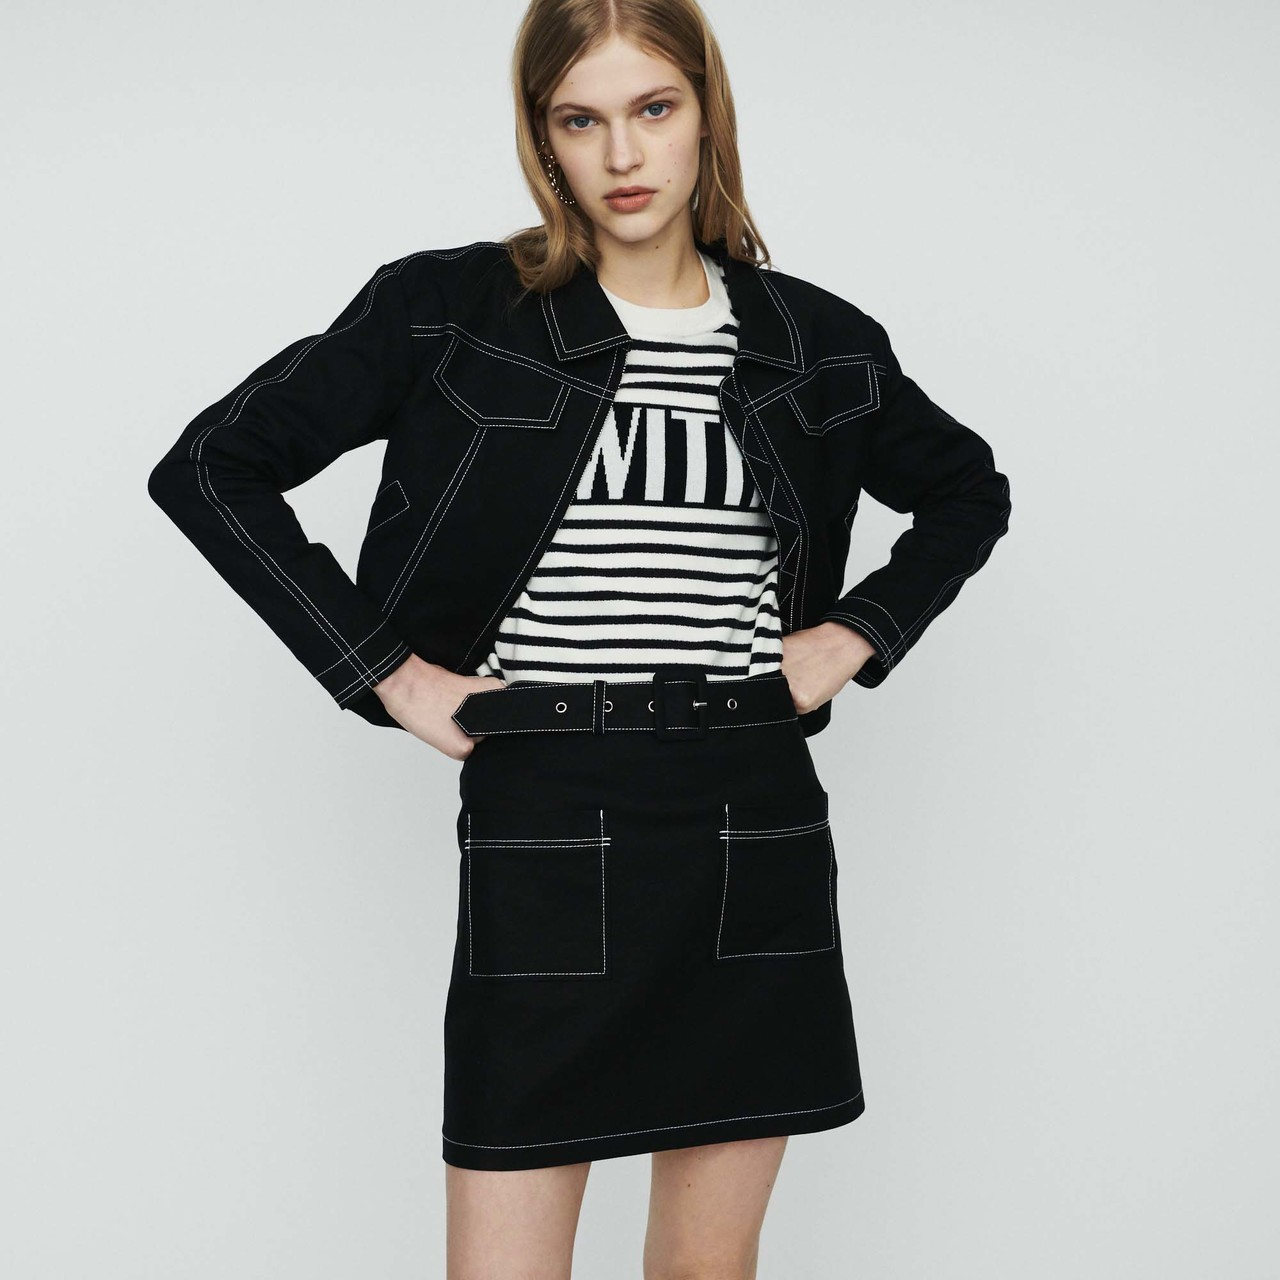 Cropped Jacket With Stitched Detailing  - Black